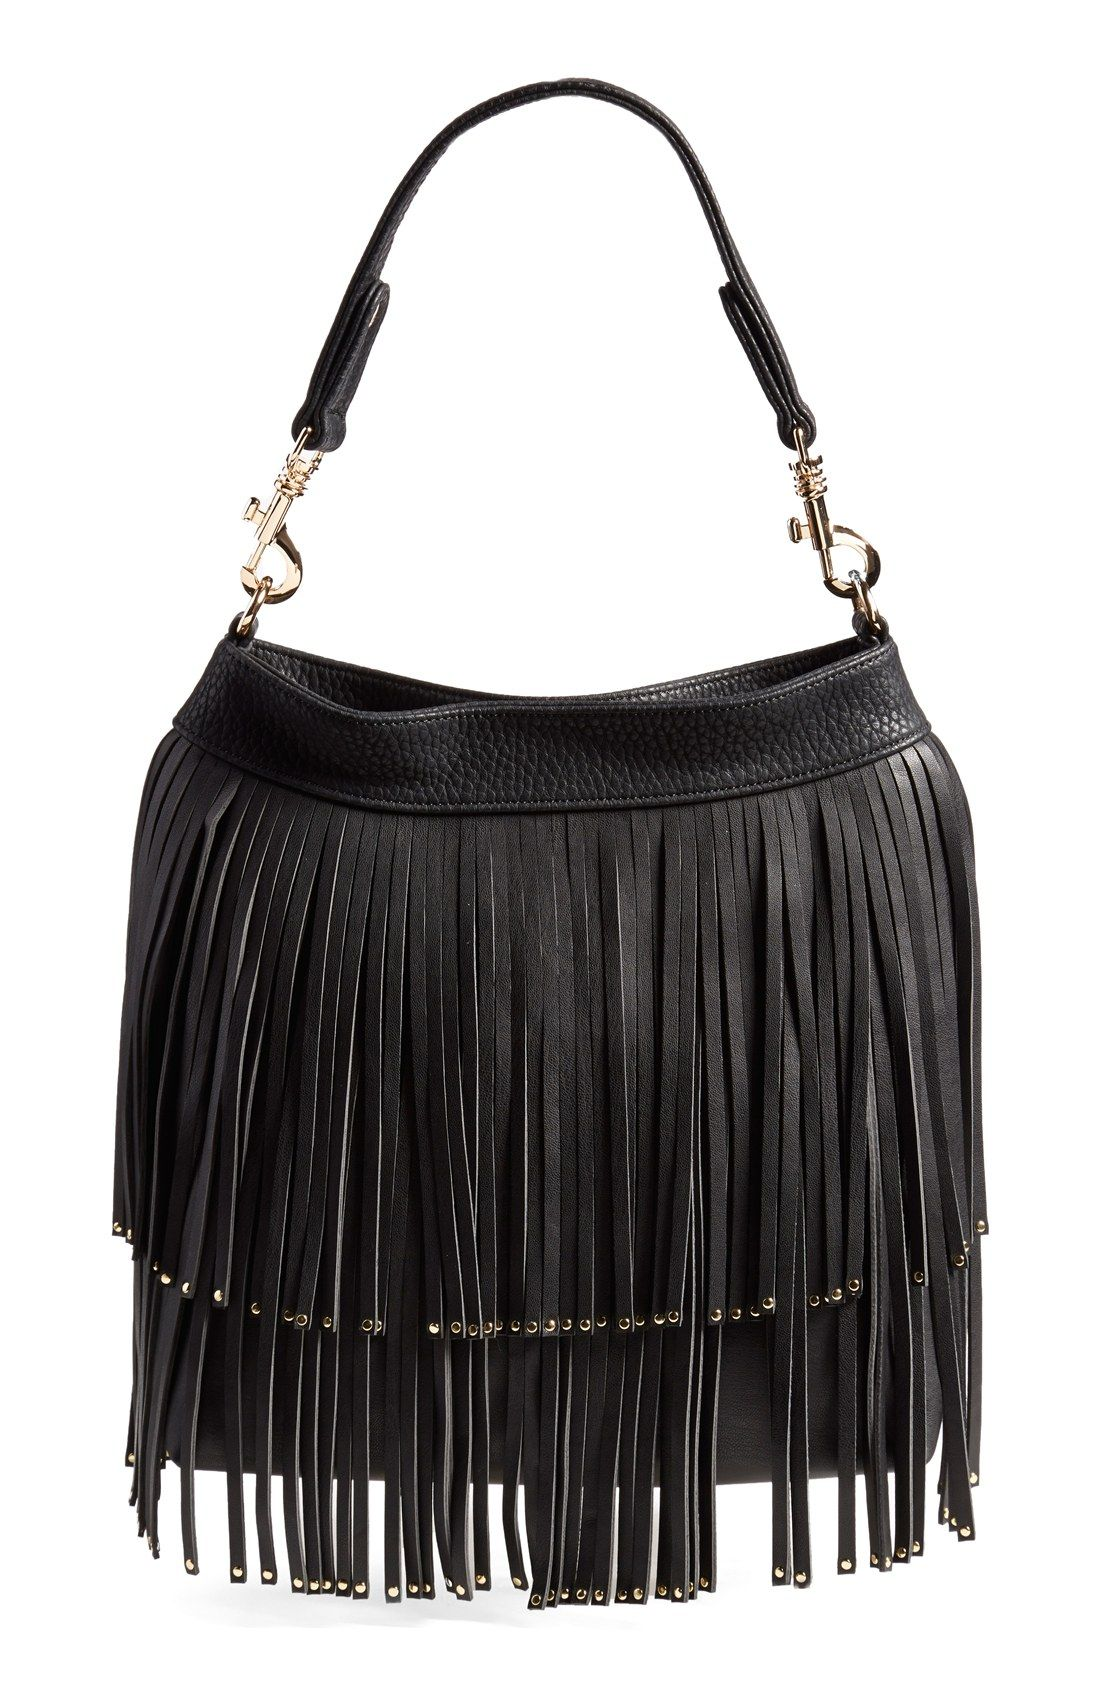 Deux Lux 'Mae' Faux Leather Fringe Hobo | Fringes